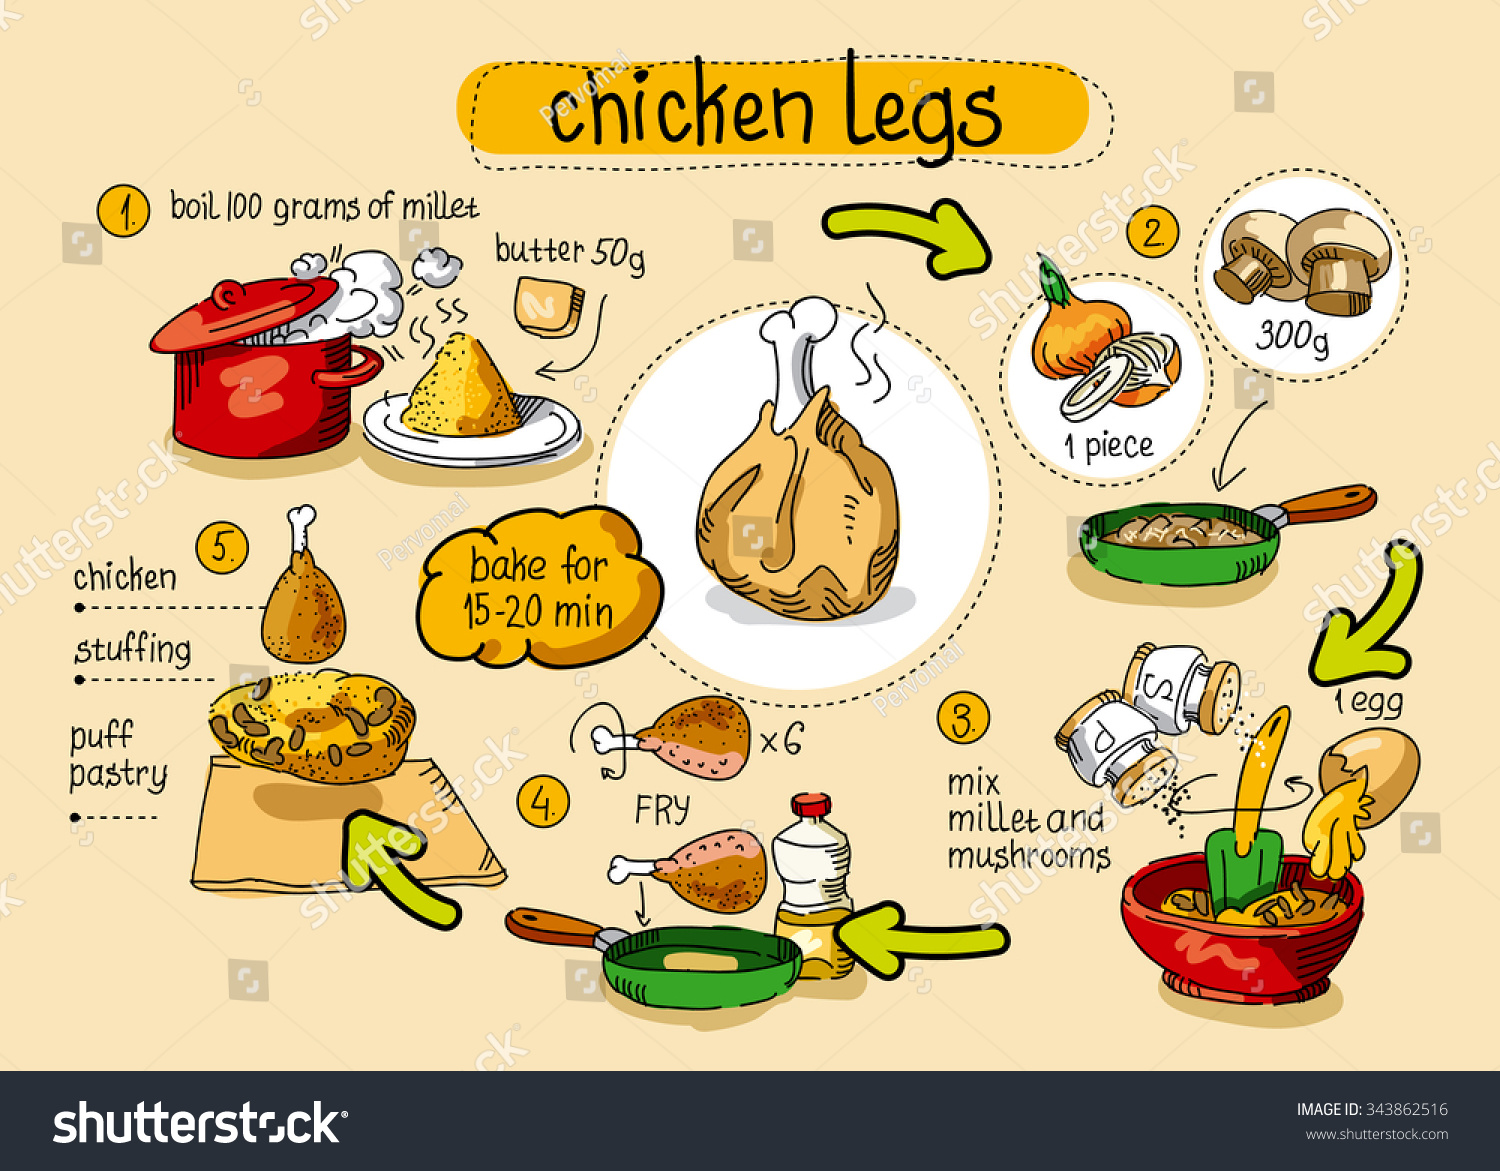 Cook Chicken Recipe Step By Instructions